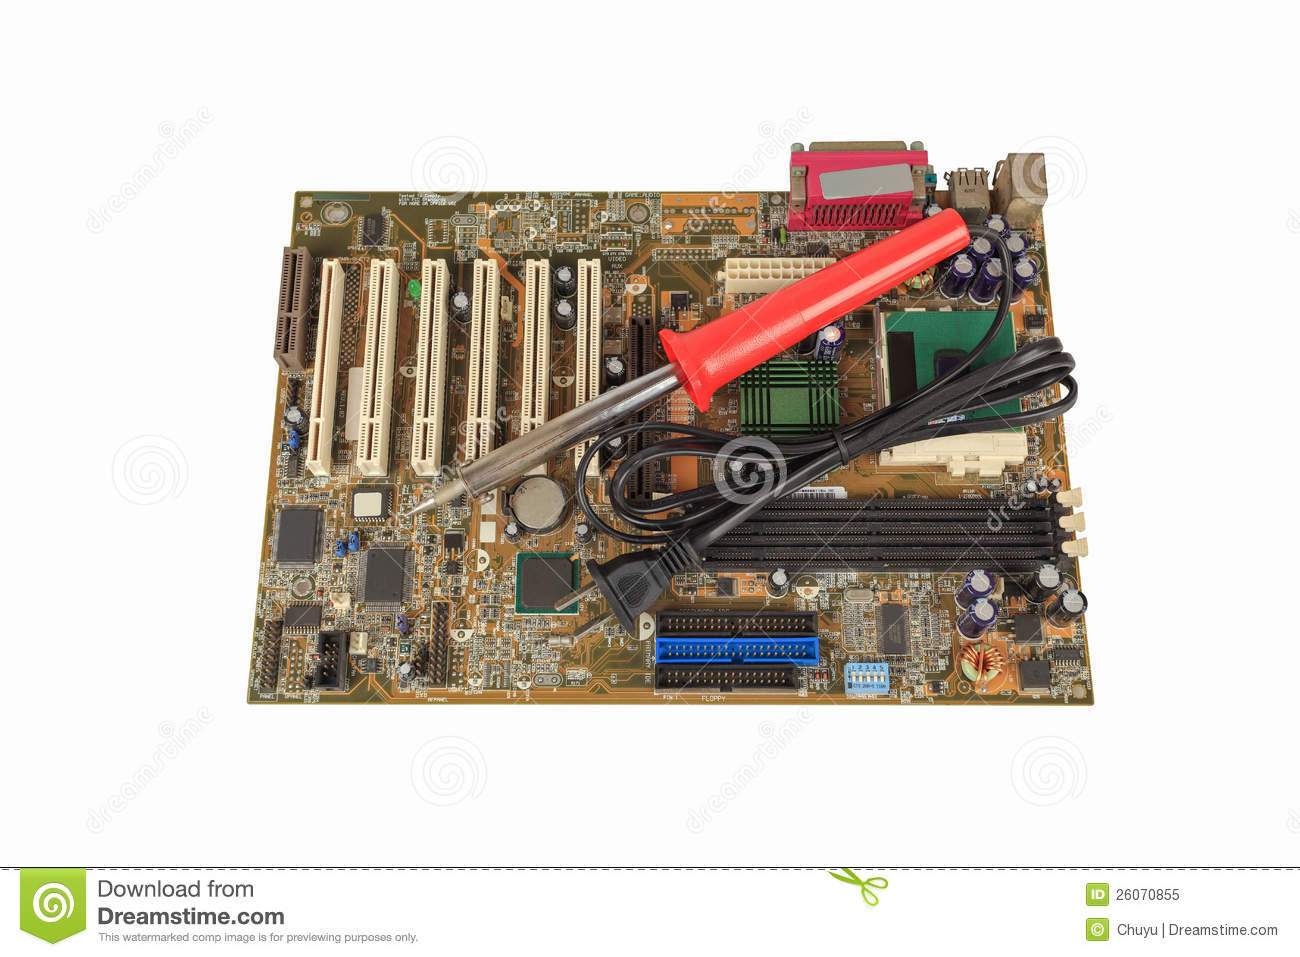 soldering iron on computer motherboard royalty free stock photo image 26070855. Black Bedroom Furniture Sets. Home Design Ideas